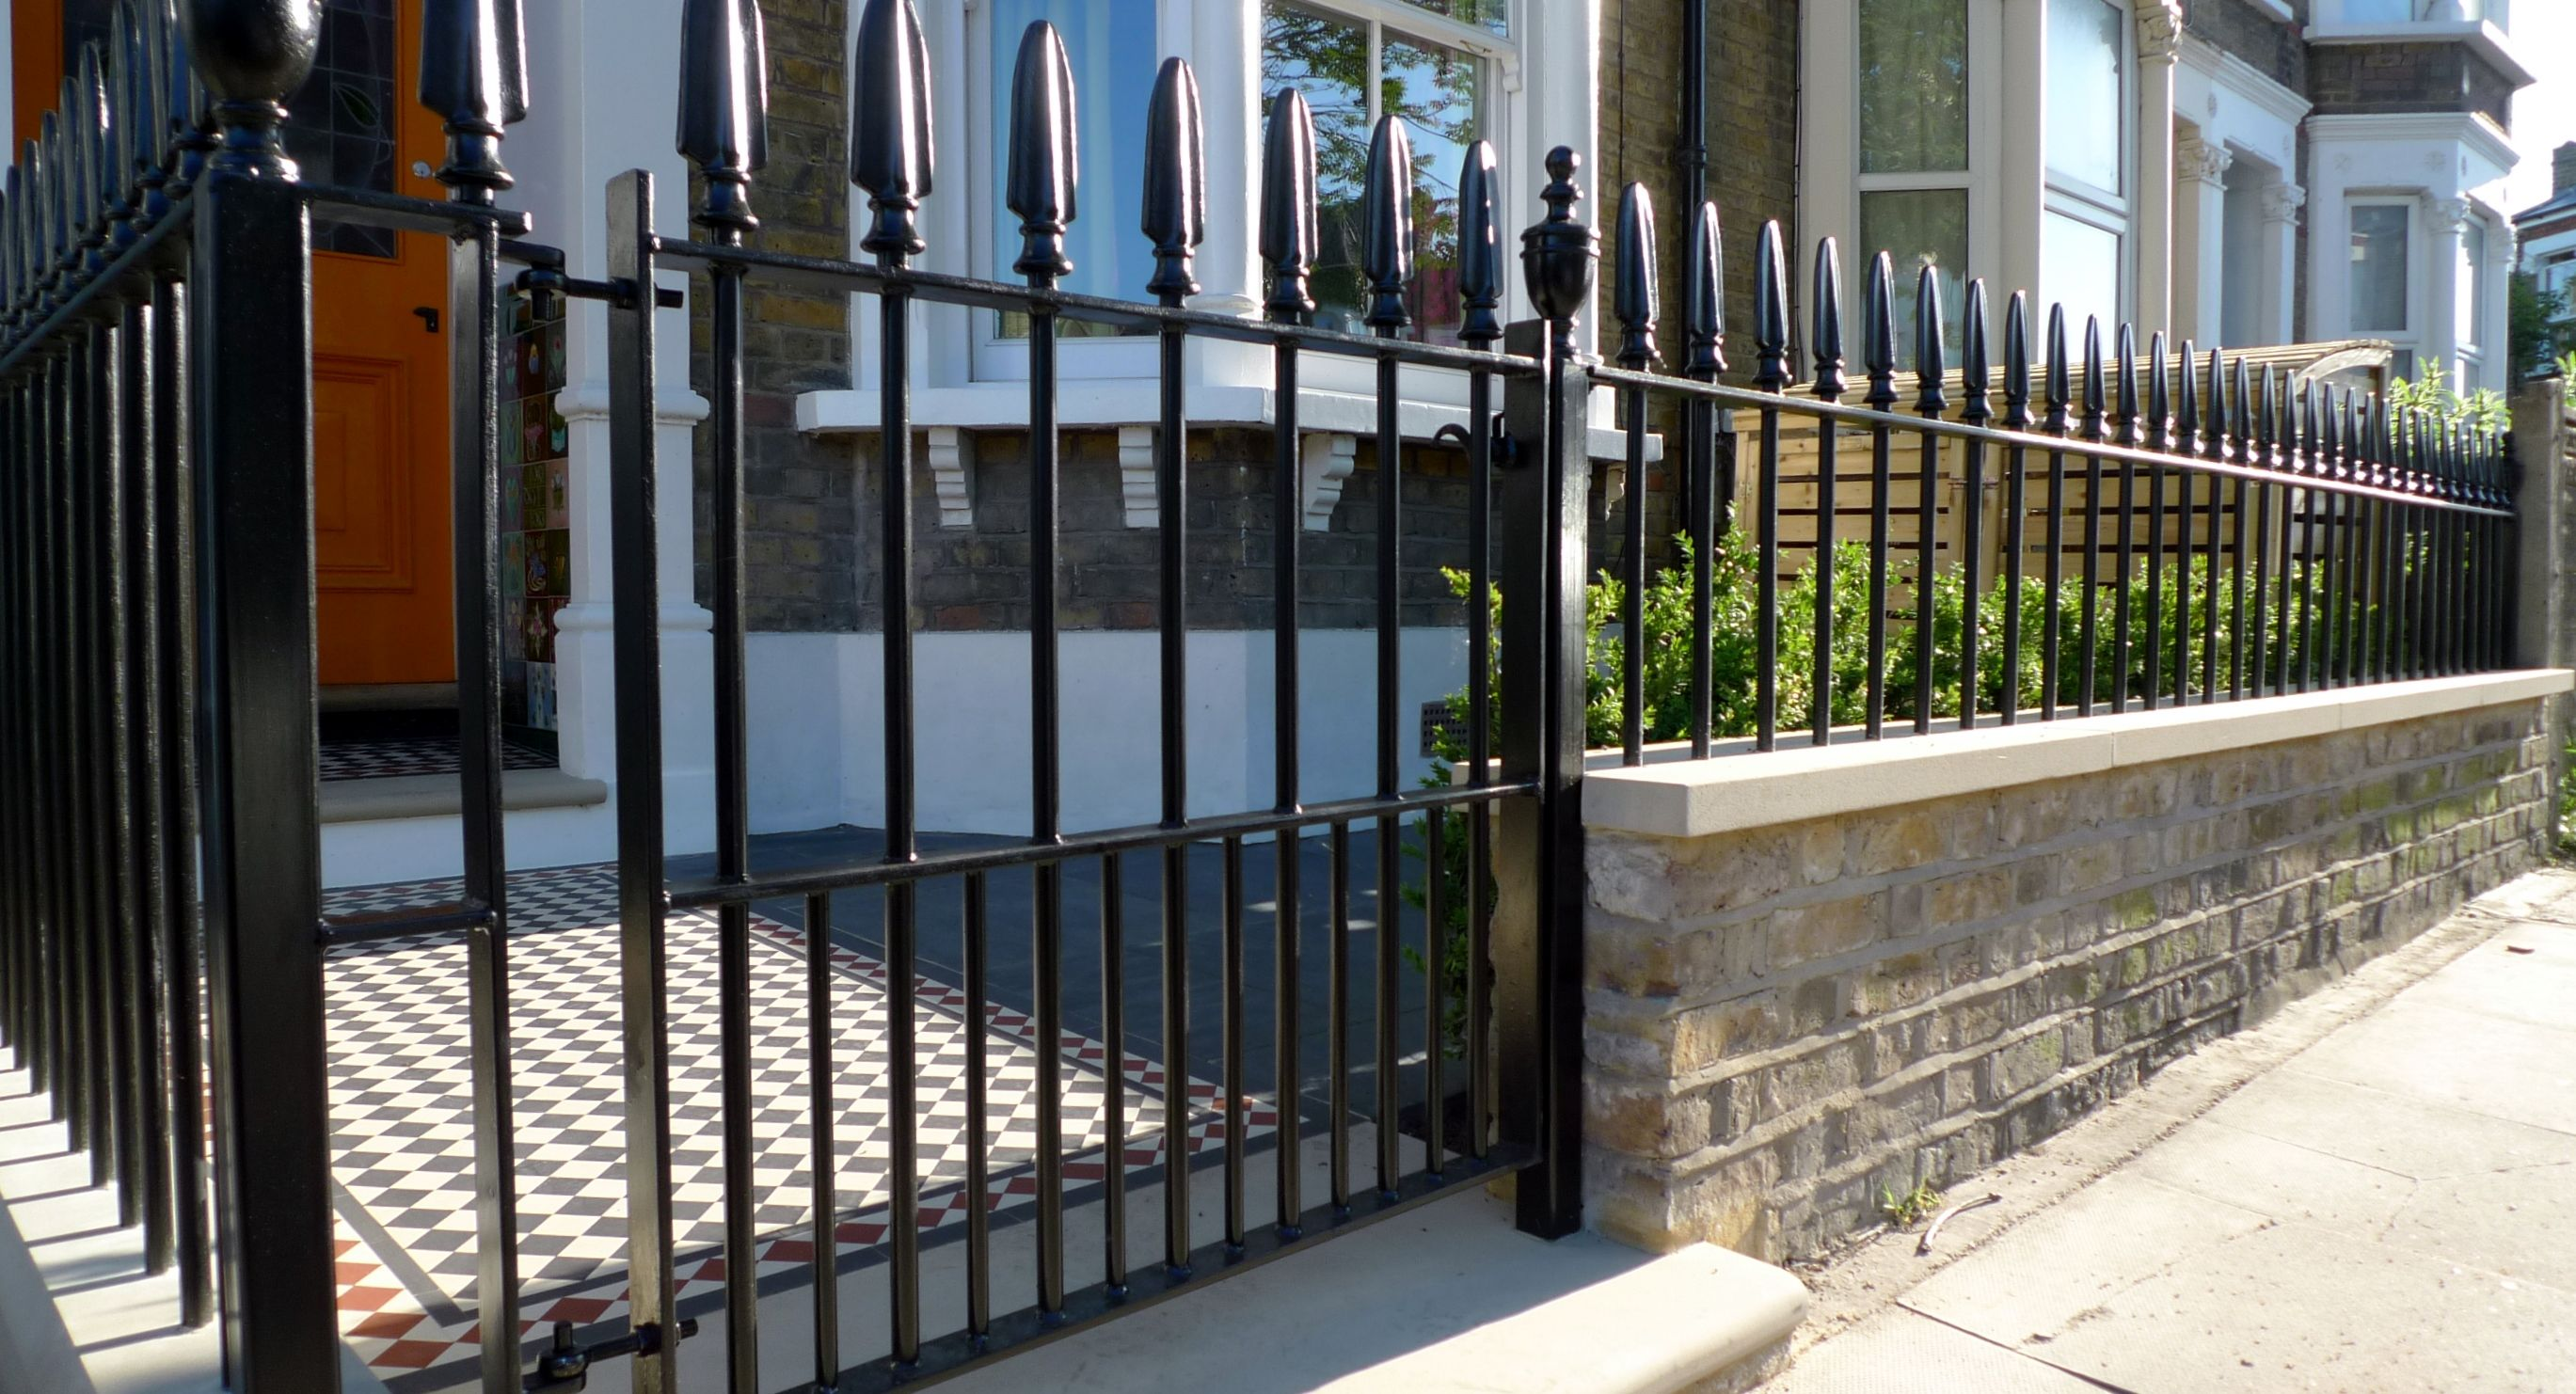 Metal gate and rail victorian london front garden company mosaic metal gate and rail victorian london front garden company mosaic paving wall yorkstone caps and bullnose londong 27381482 front garden pinterest baanklon Gallery